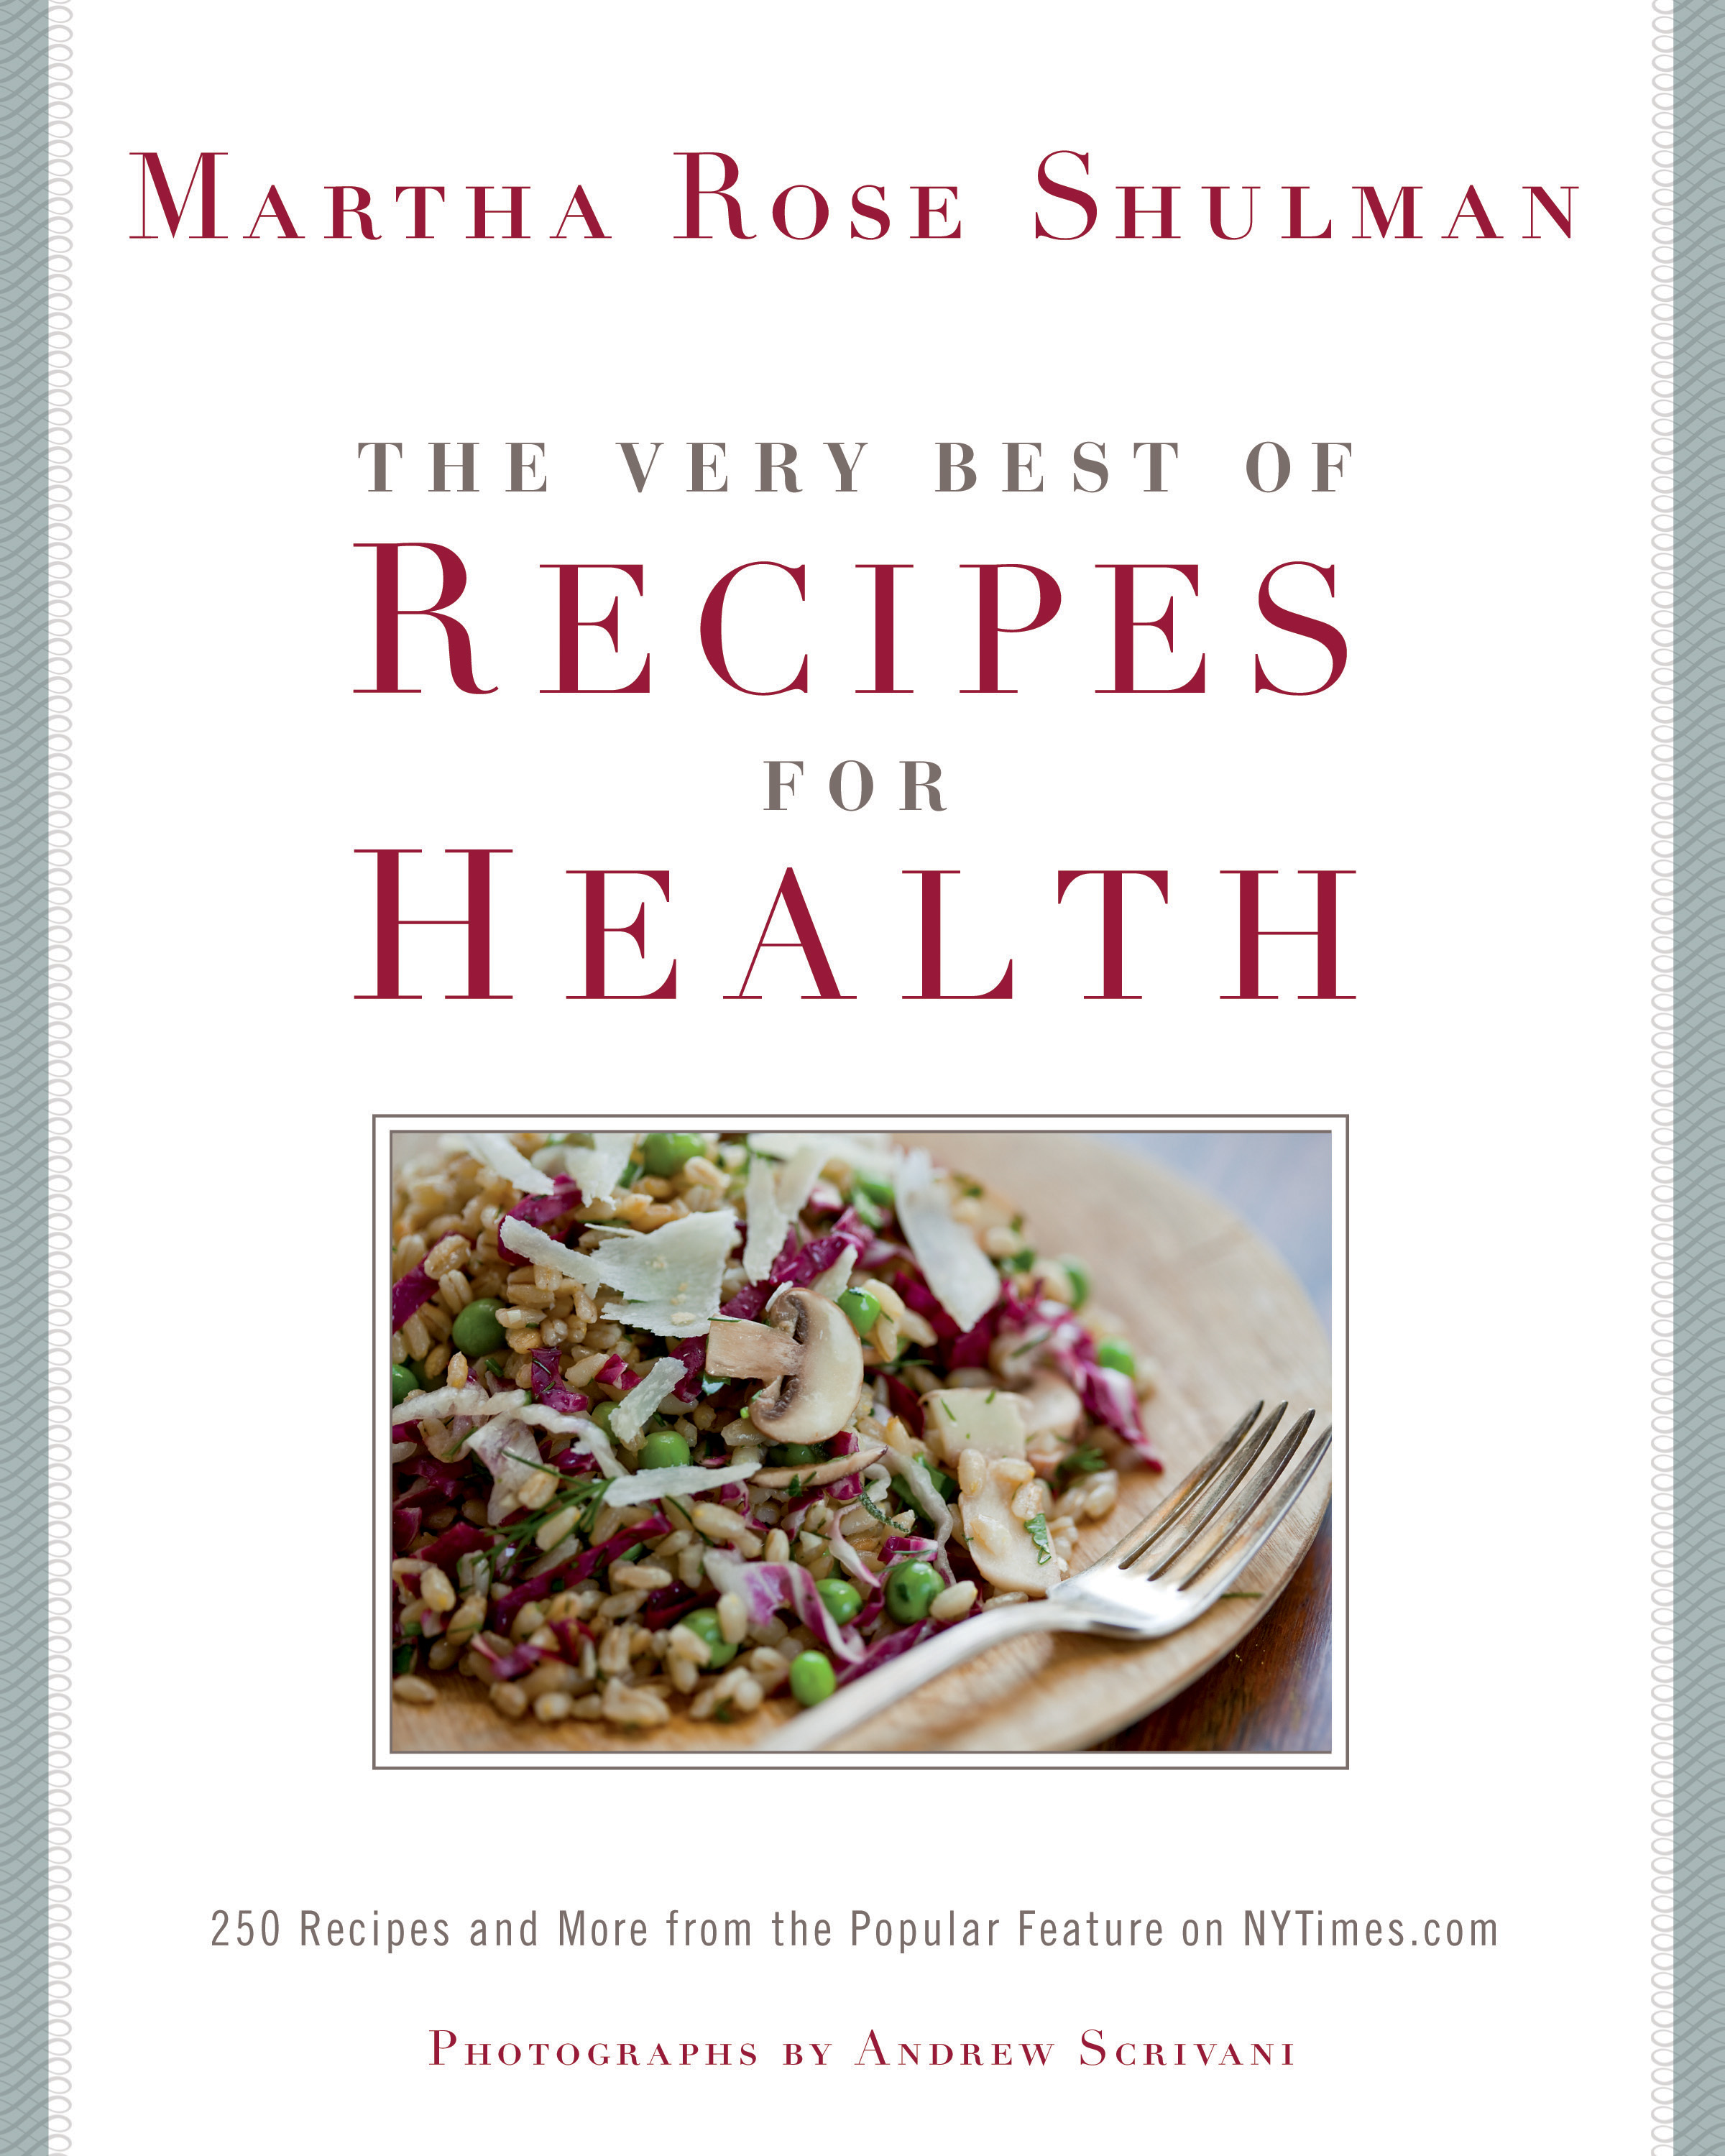 Rodale - The Very Best Recipes for Health - 9781605291116.jpg